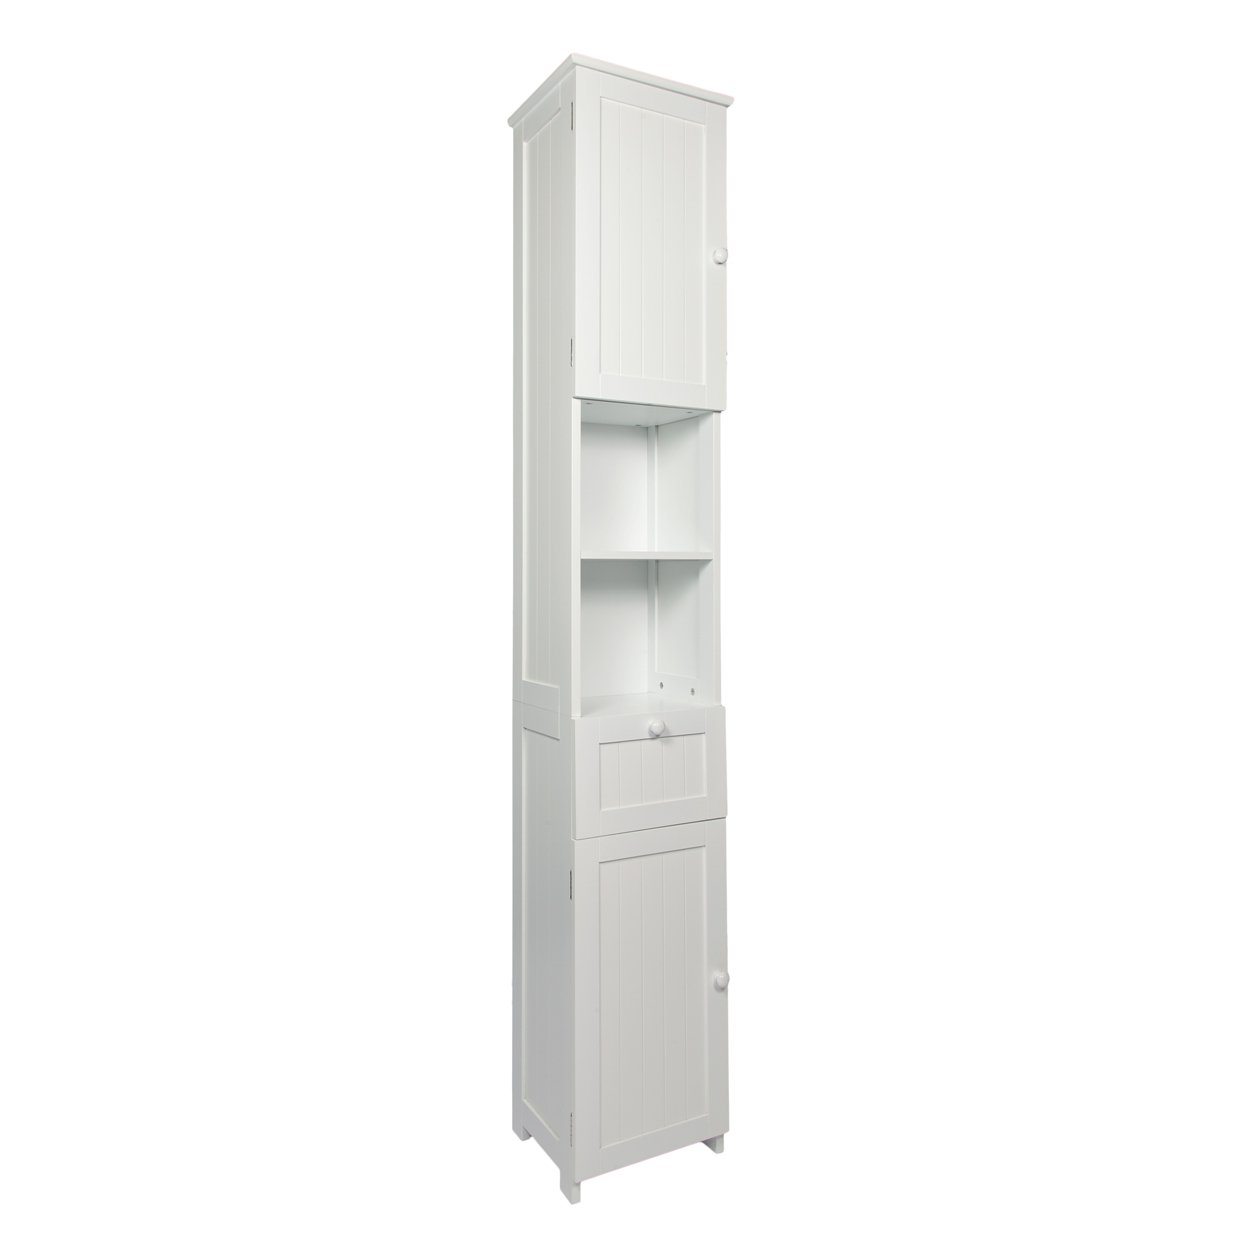 Slim tall bathroom cabinet bar cabinet Thin bathroom cabinet